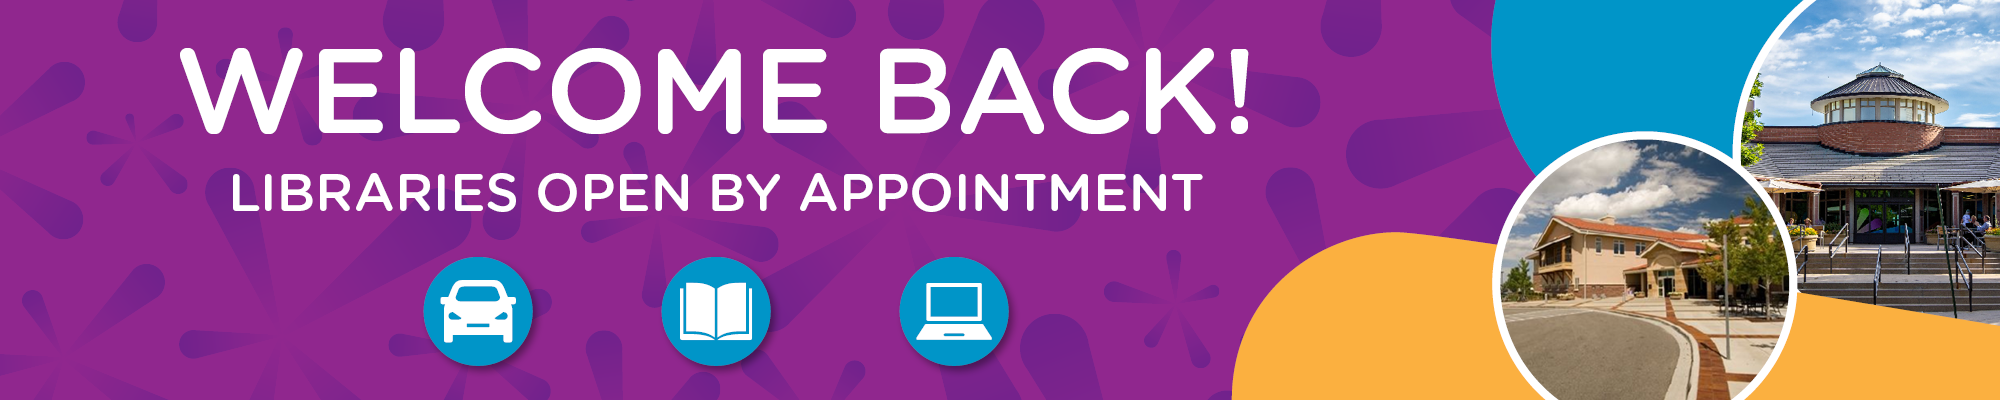 Welcome Back! Libraries Open by Appointment